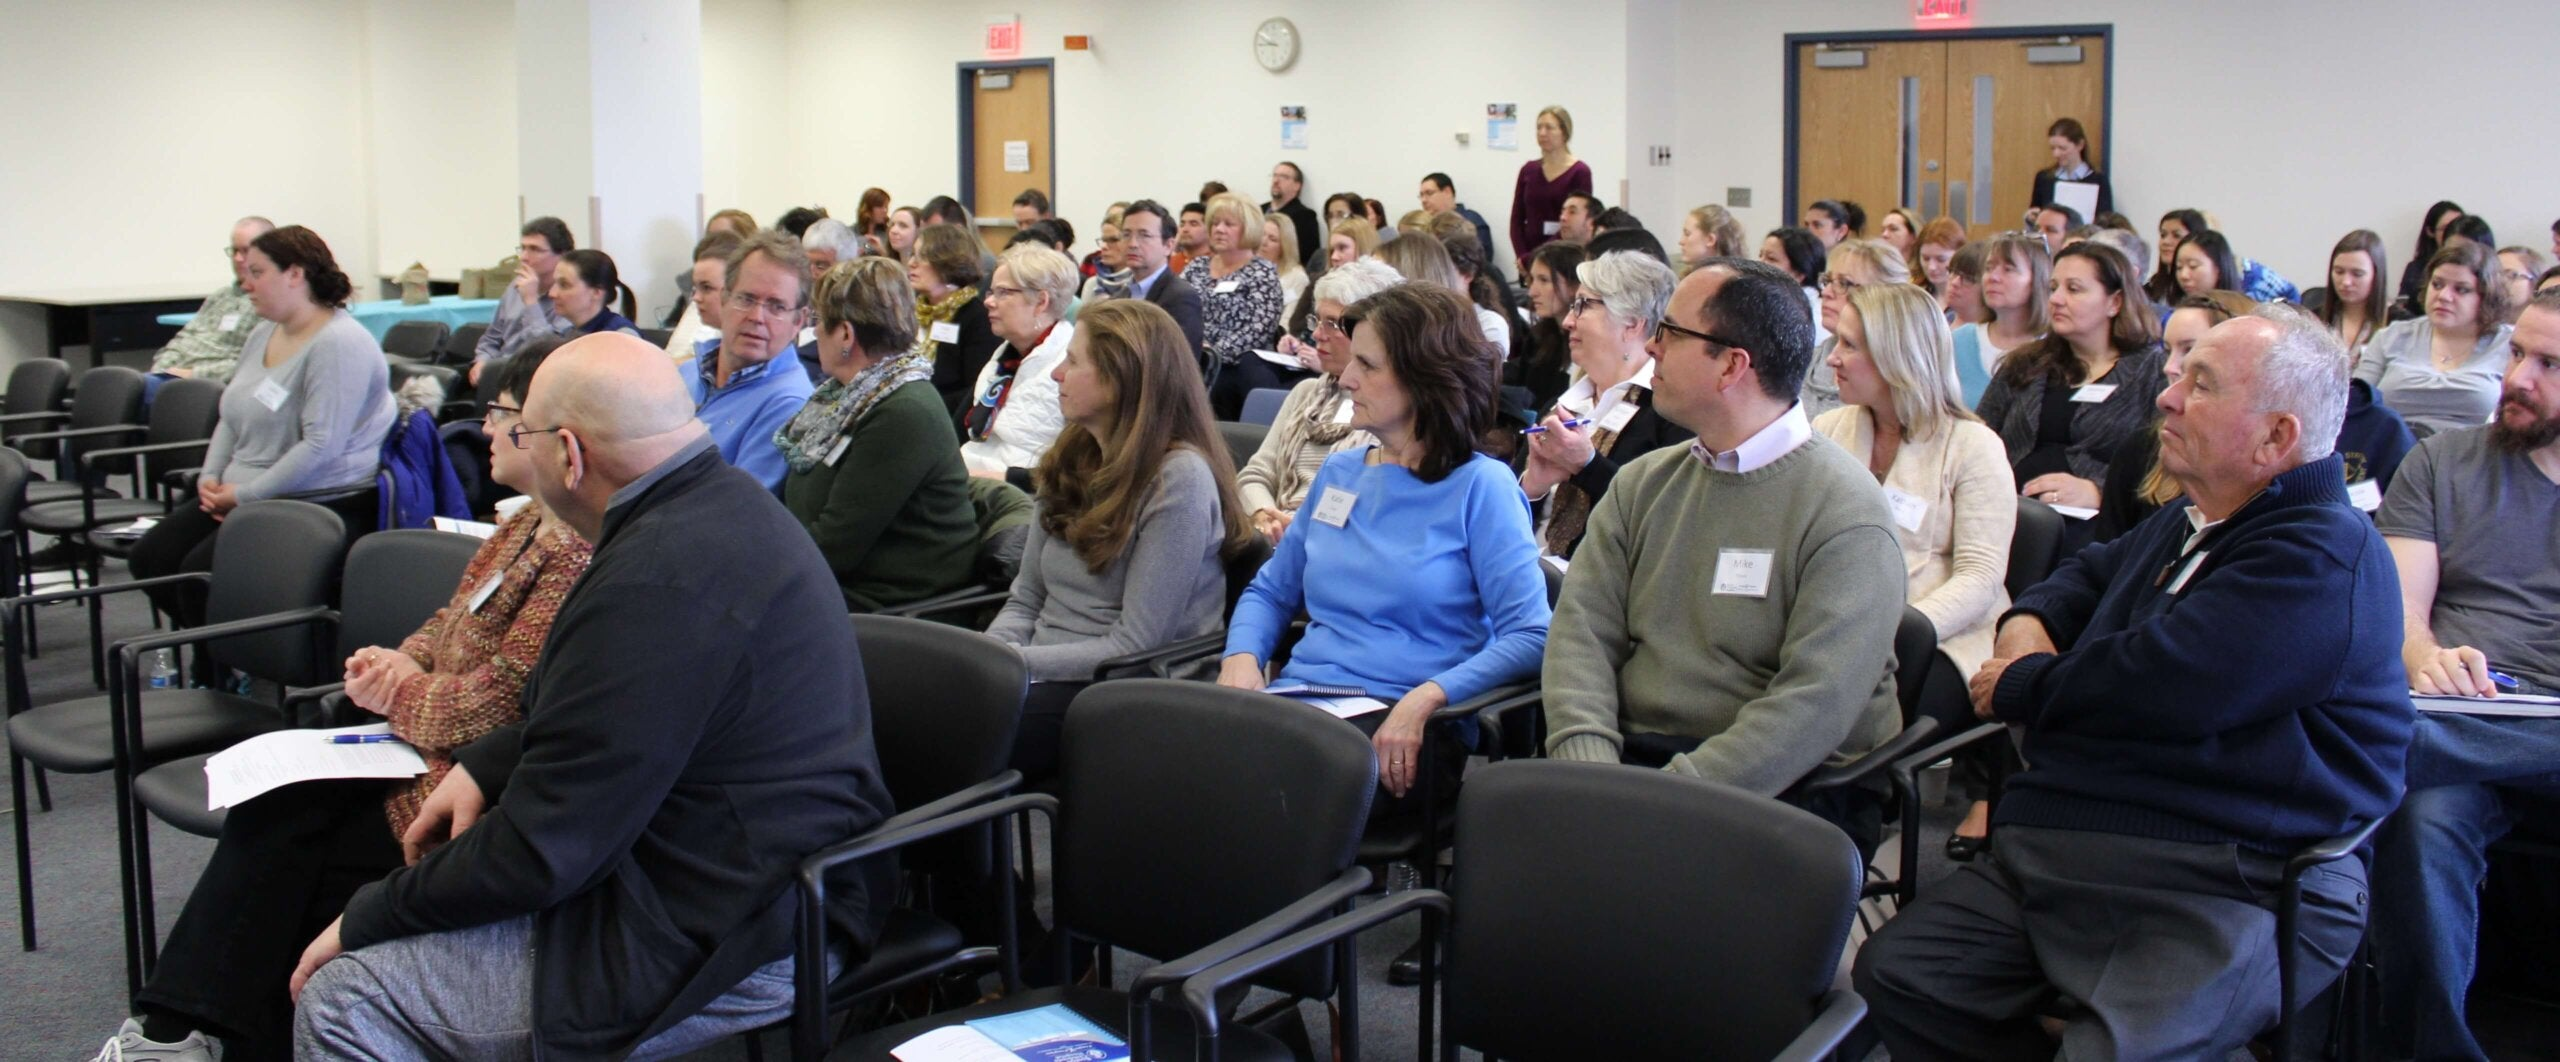 Boston conference audience